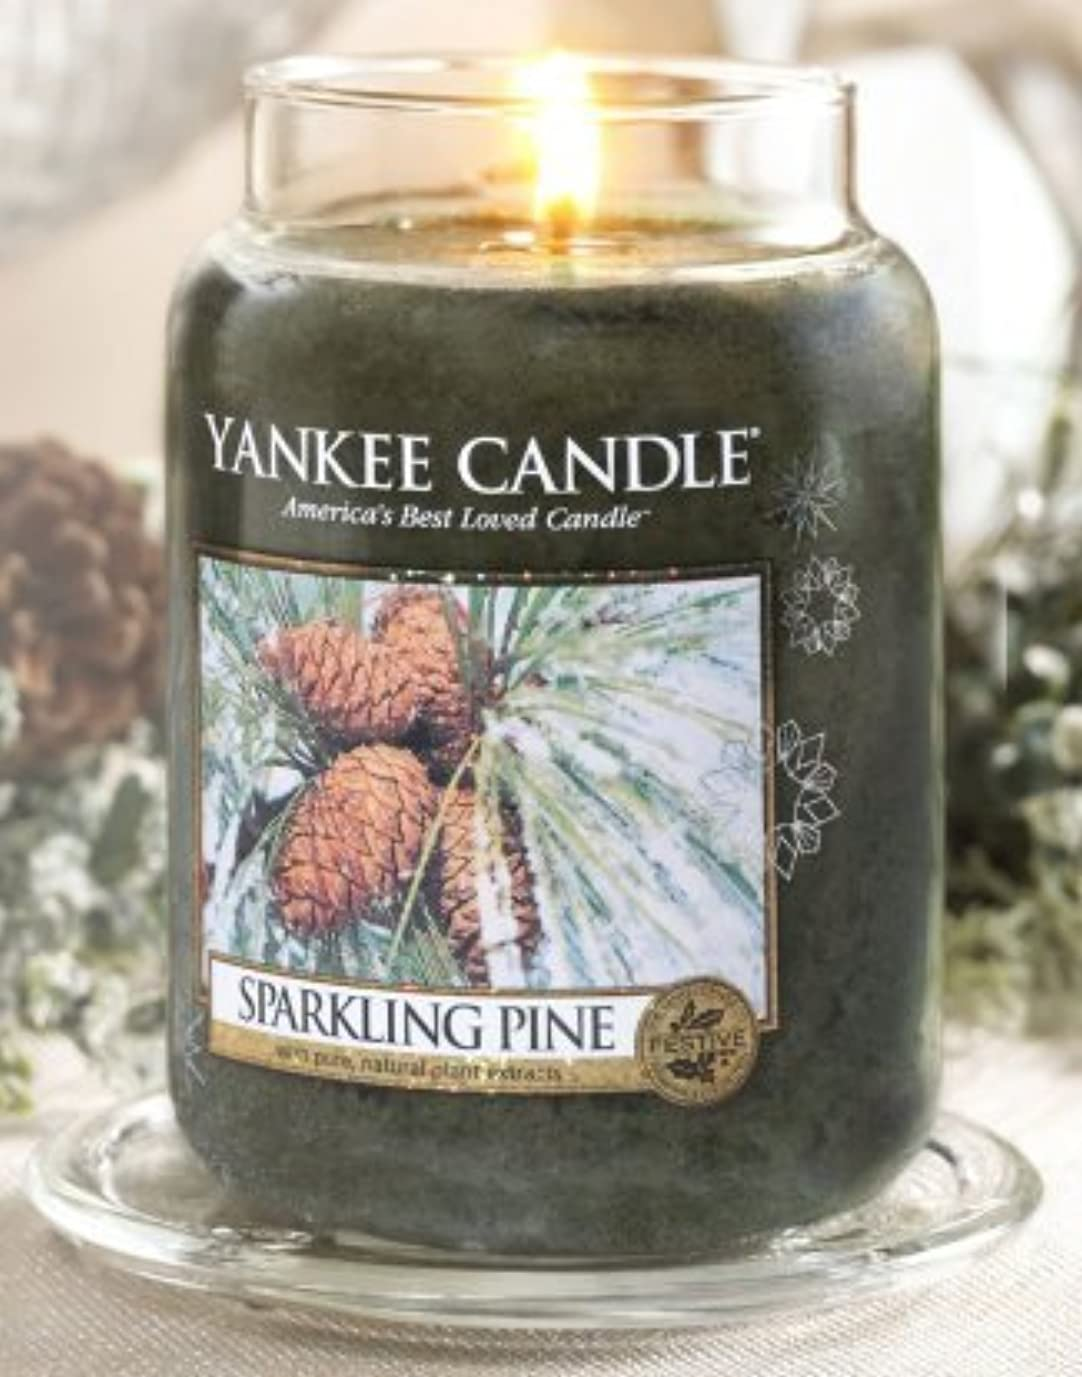 Yankee Candle Sparkling Pine Large Jar Candle